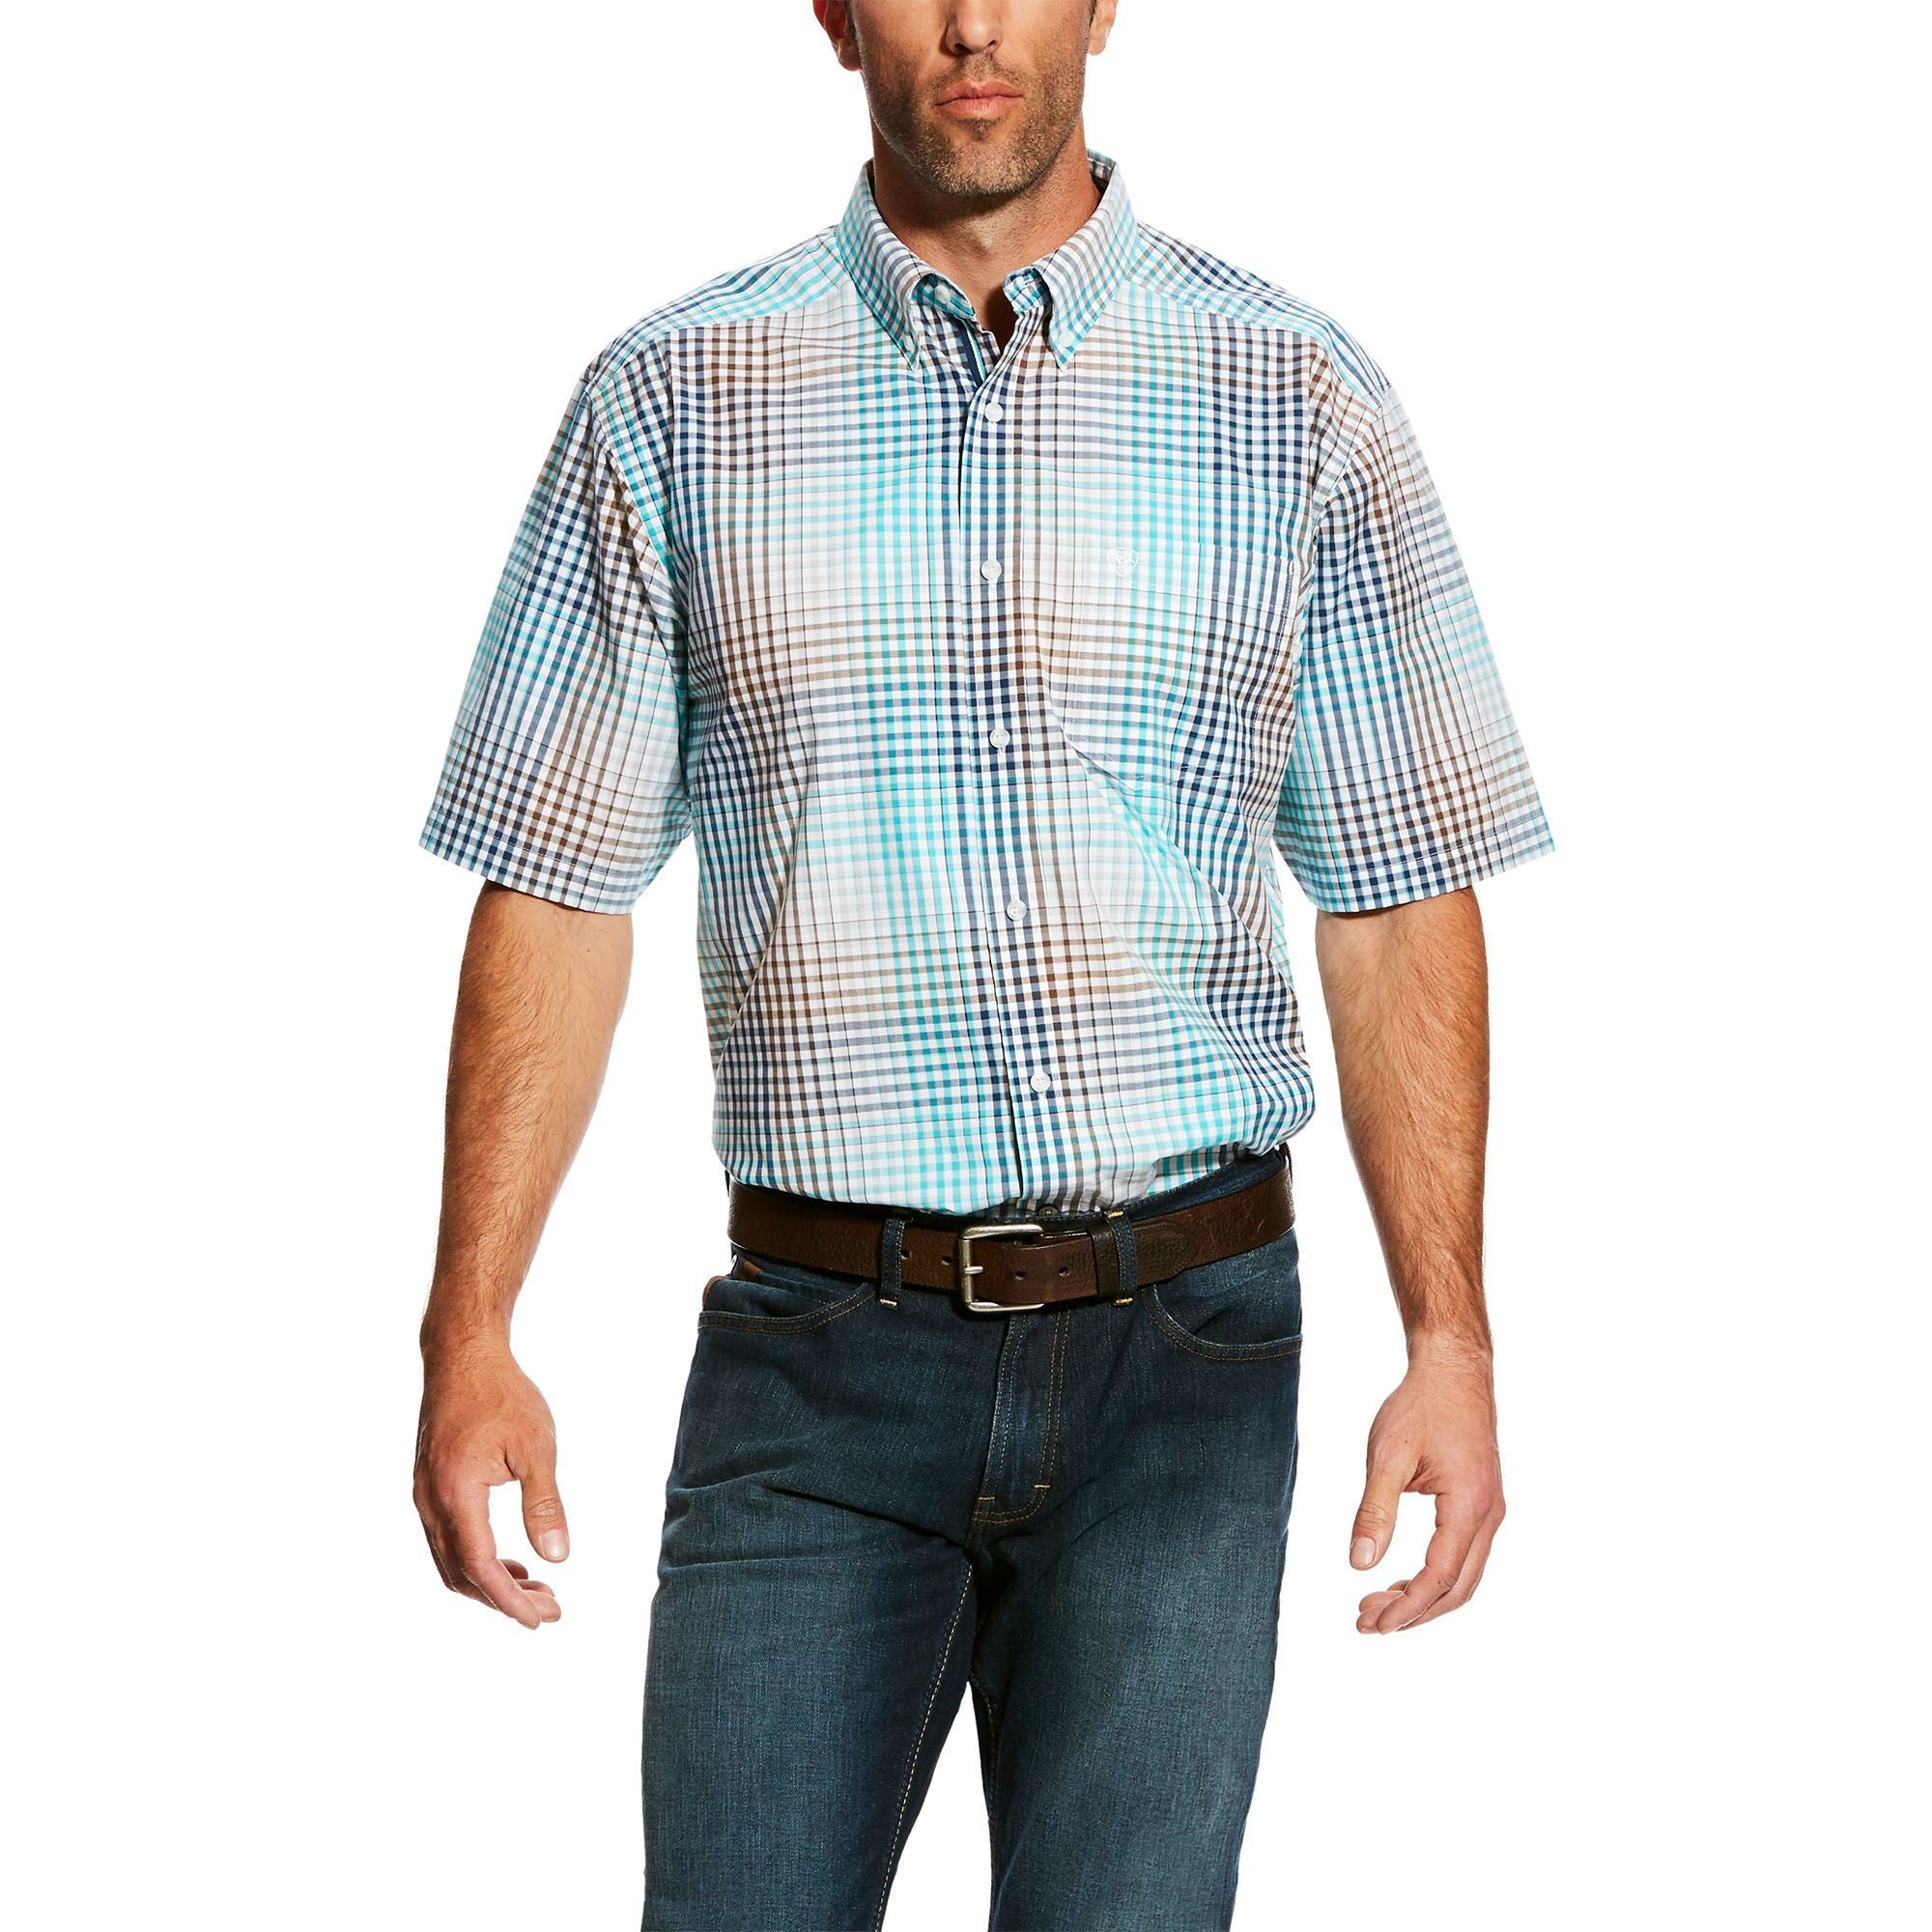 33cc5405c74 Columbia Sportswear Global Adventure Plaid Shirt - UPF 15, Short Sleeve  (For Men)